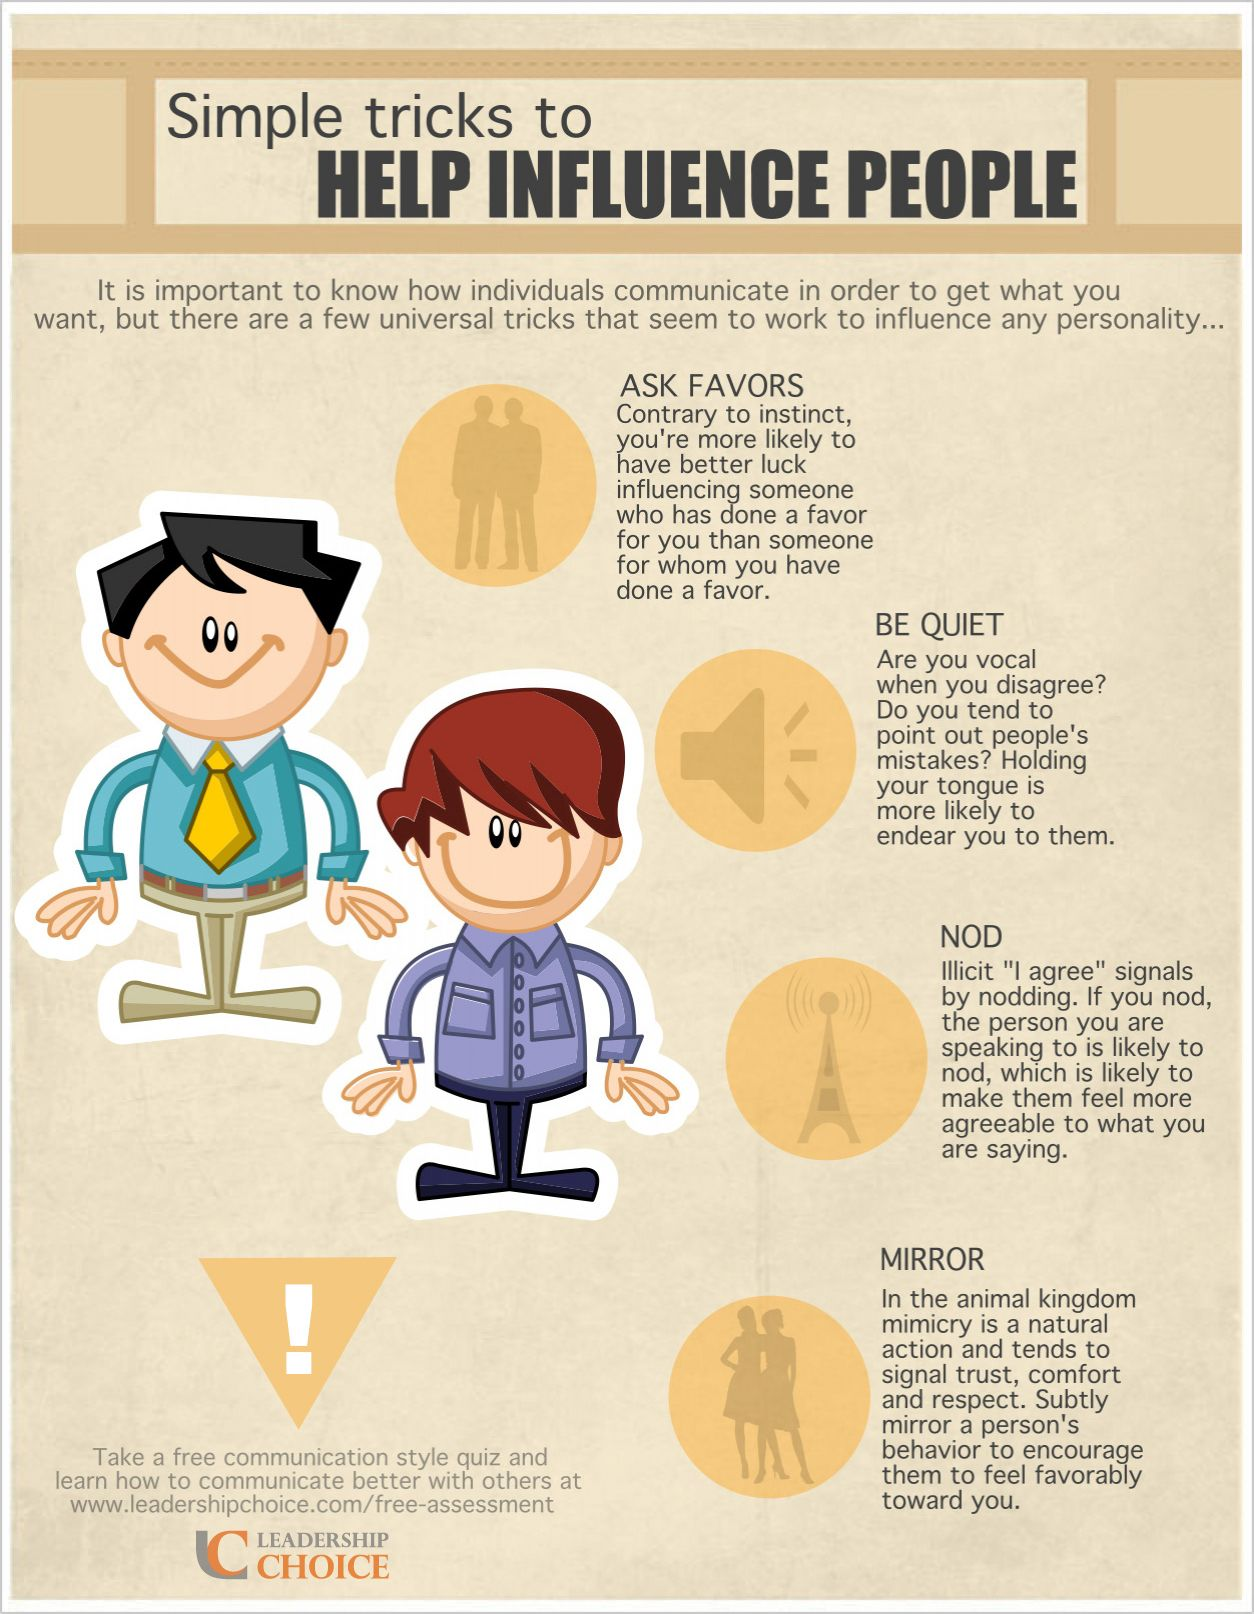 How to Influence People - 4 Simple Tricks. www.leadershipchoice.com